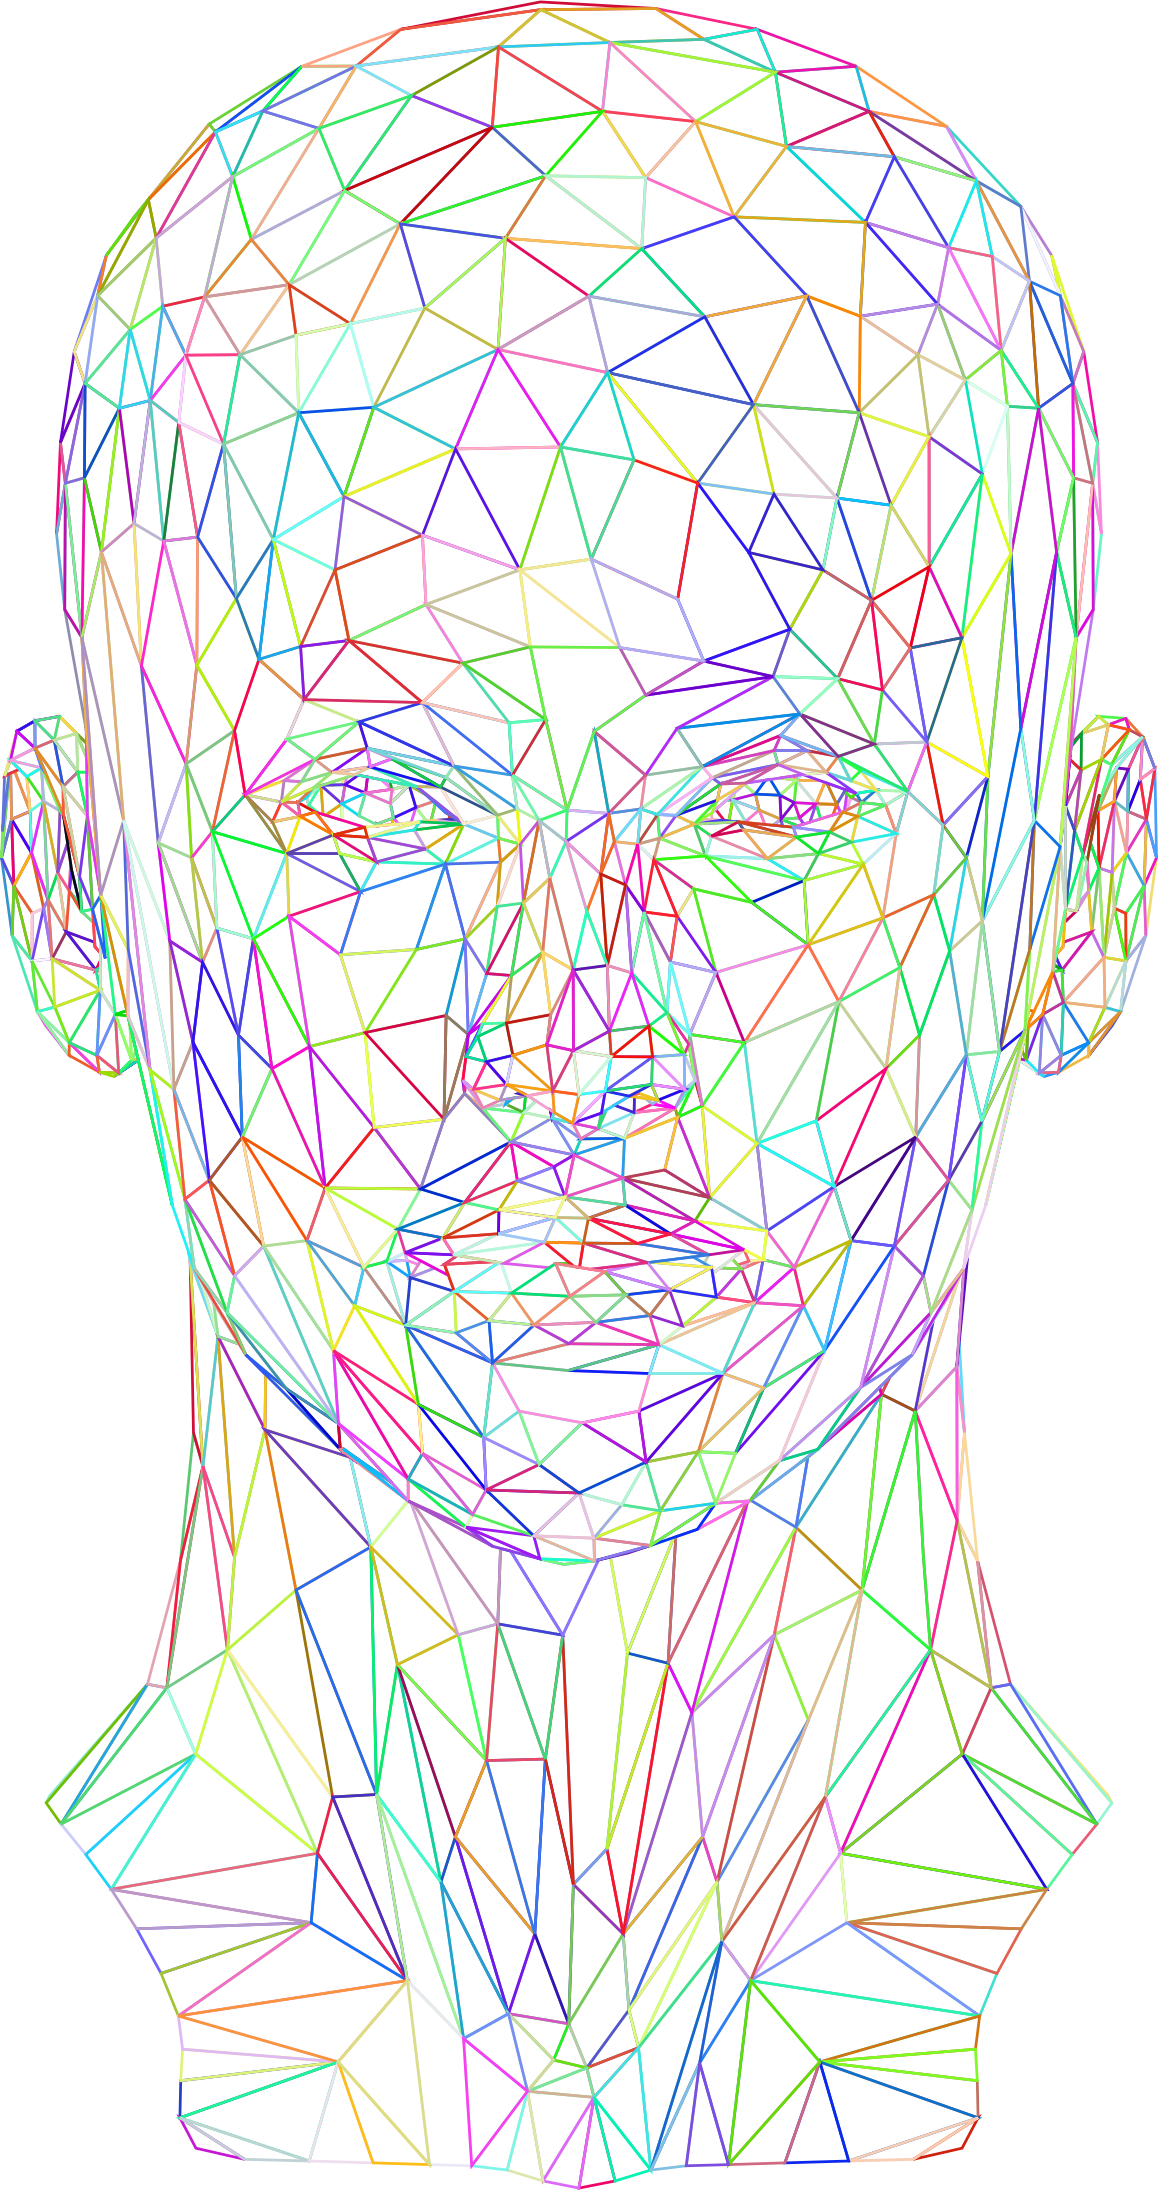 Prismatic Low Poly Female Head Wireframe No Background by GDJ